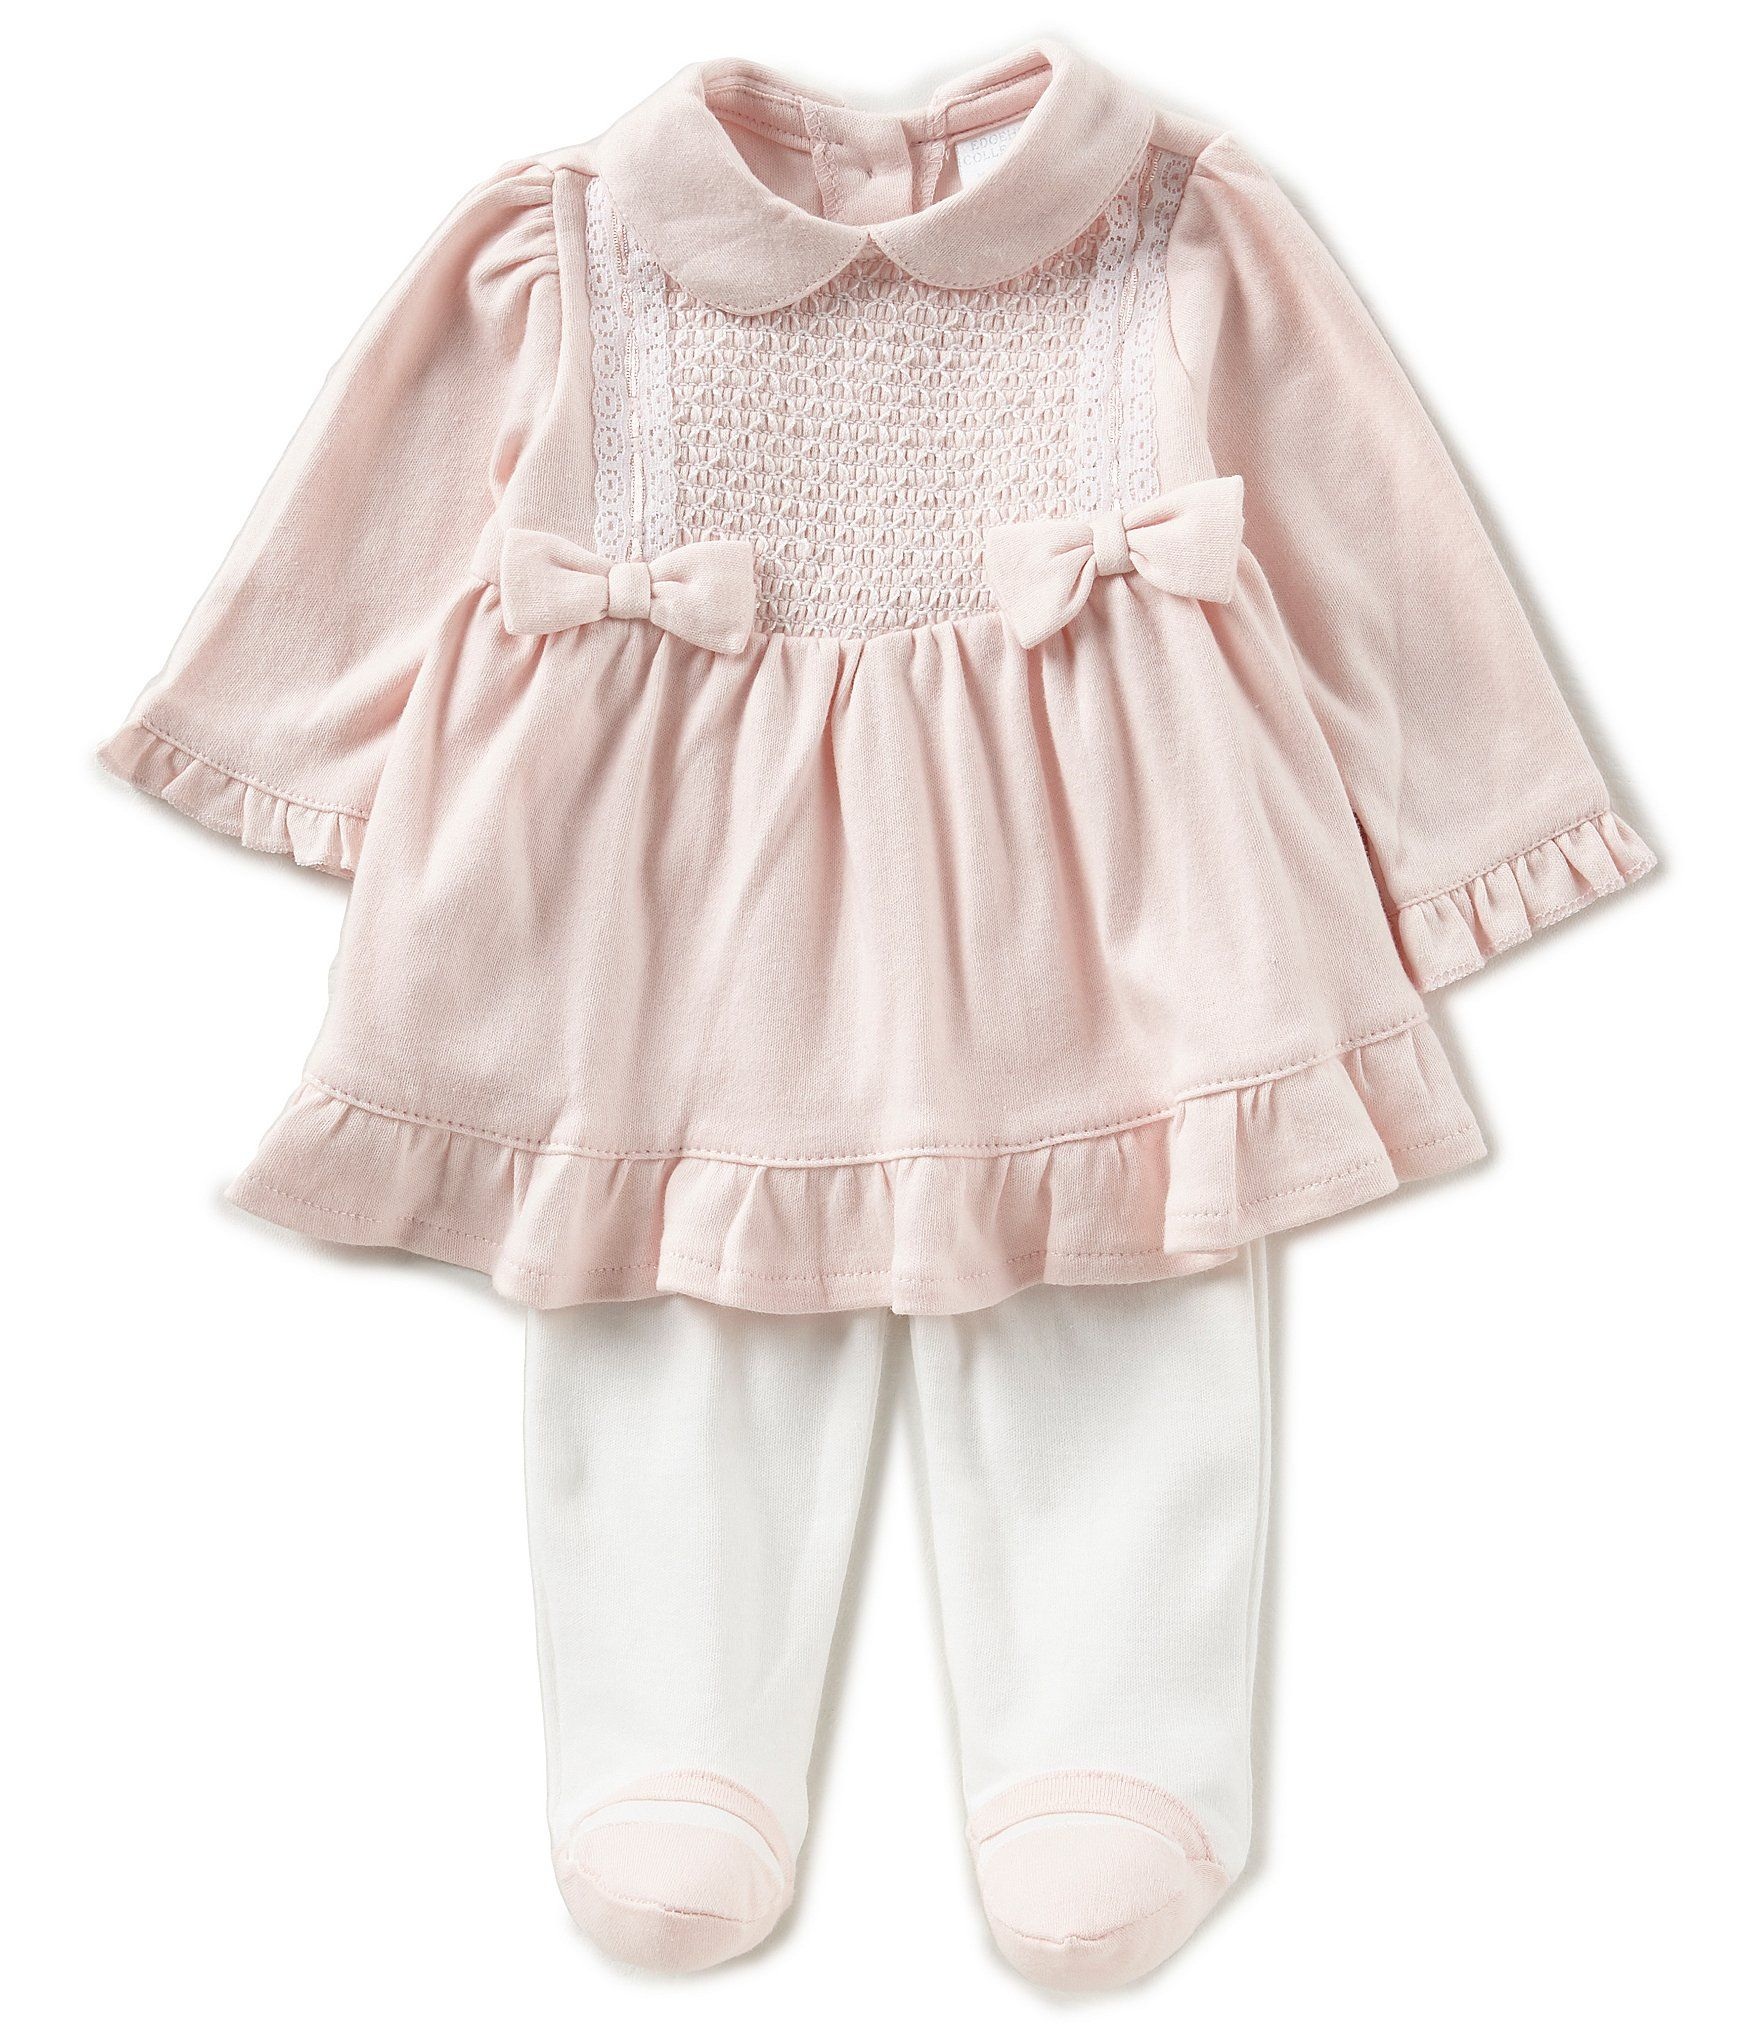 Edgehill Collection Baby Girls Newborn 6 Months Bow Pleated Dress